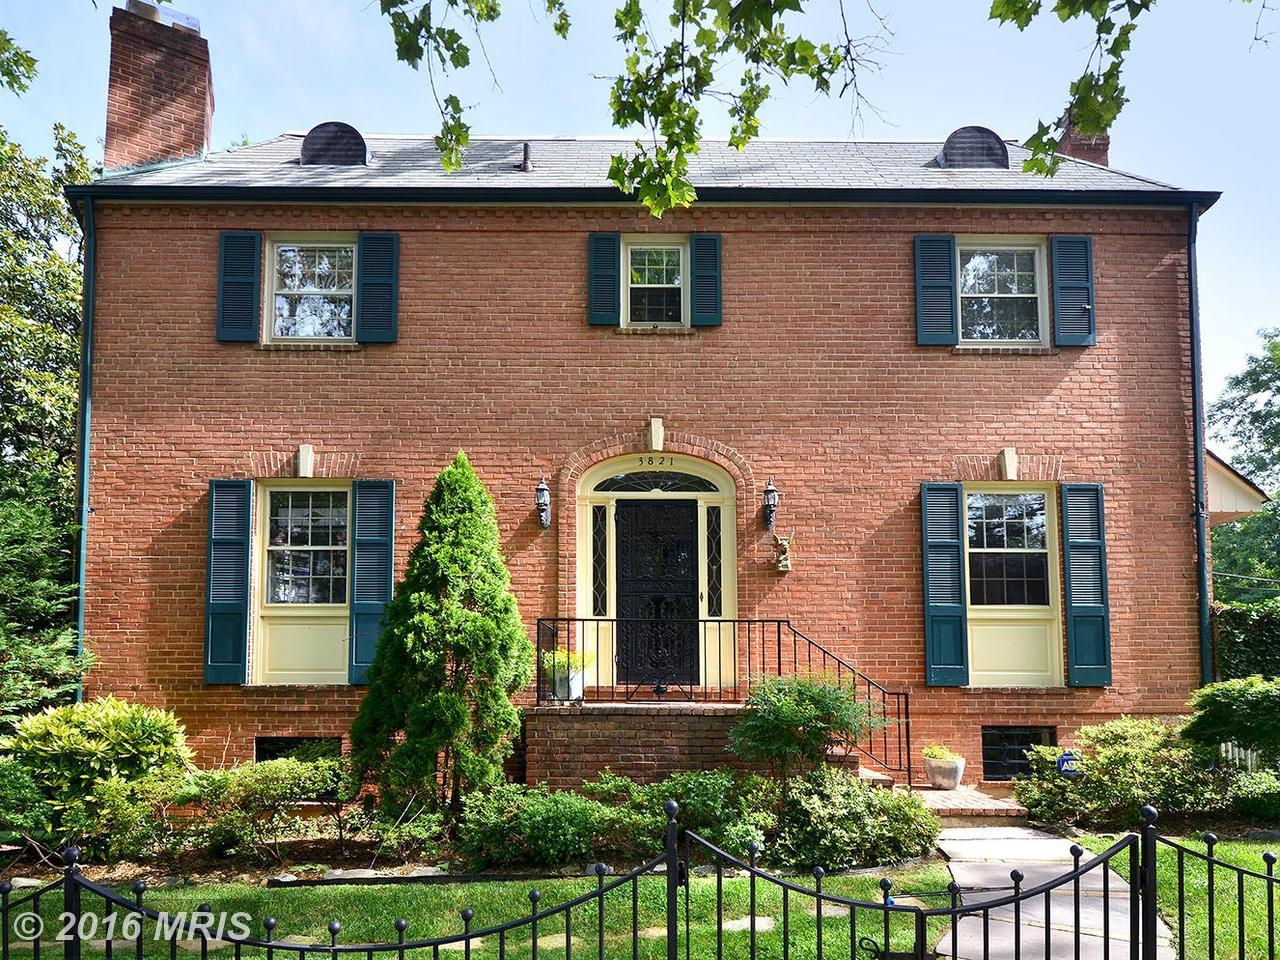 3821 Macomb St NW, Washington, DC 20016 - Estimate and Home Details ...